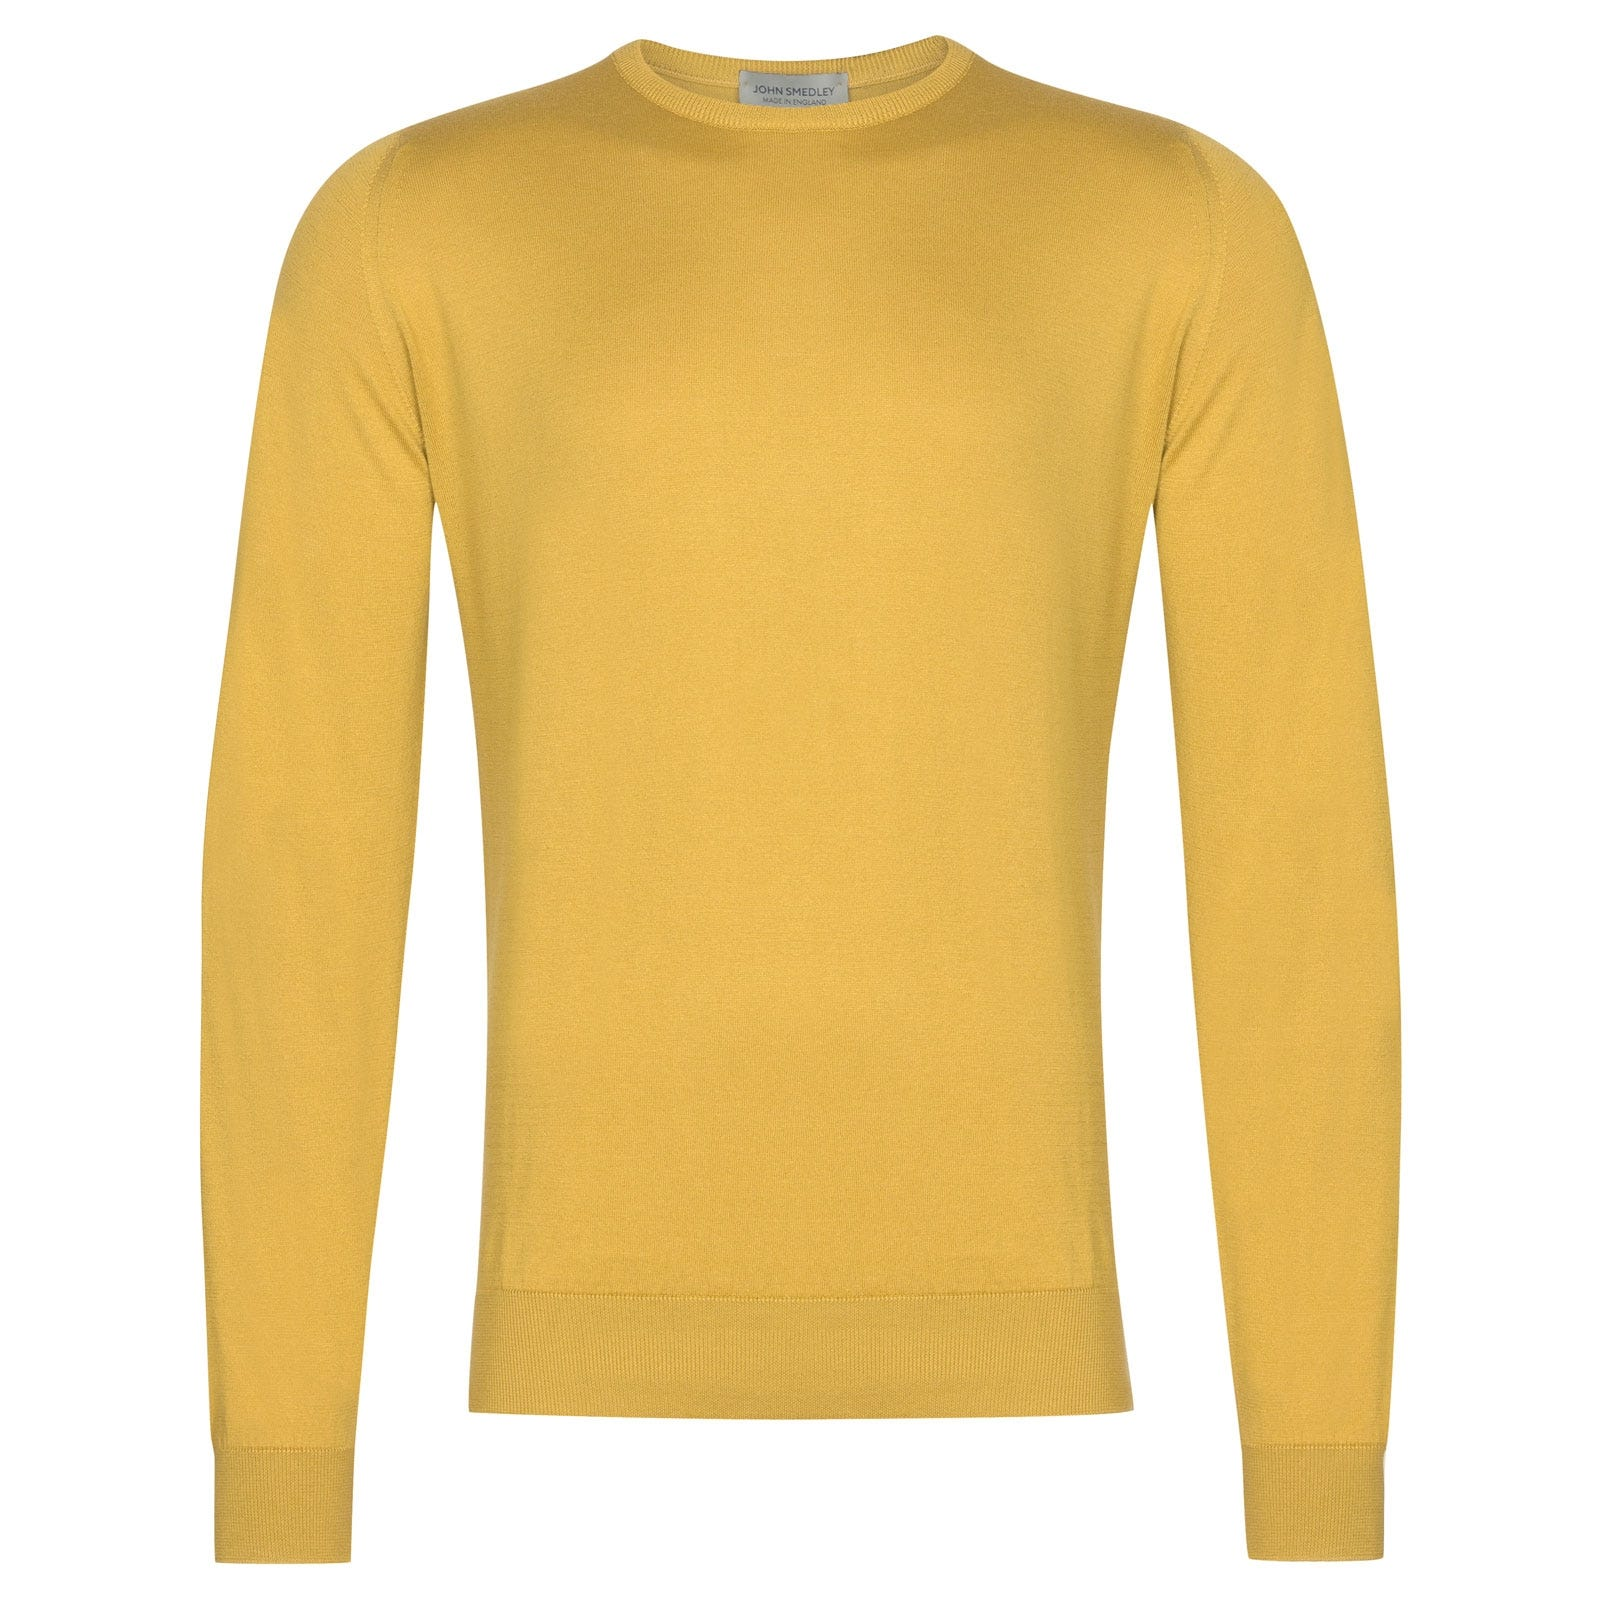 John Smedley Hatfield in Yellow Bloom Pullover-SML